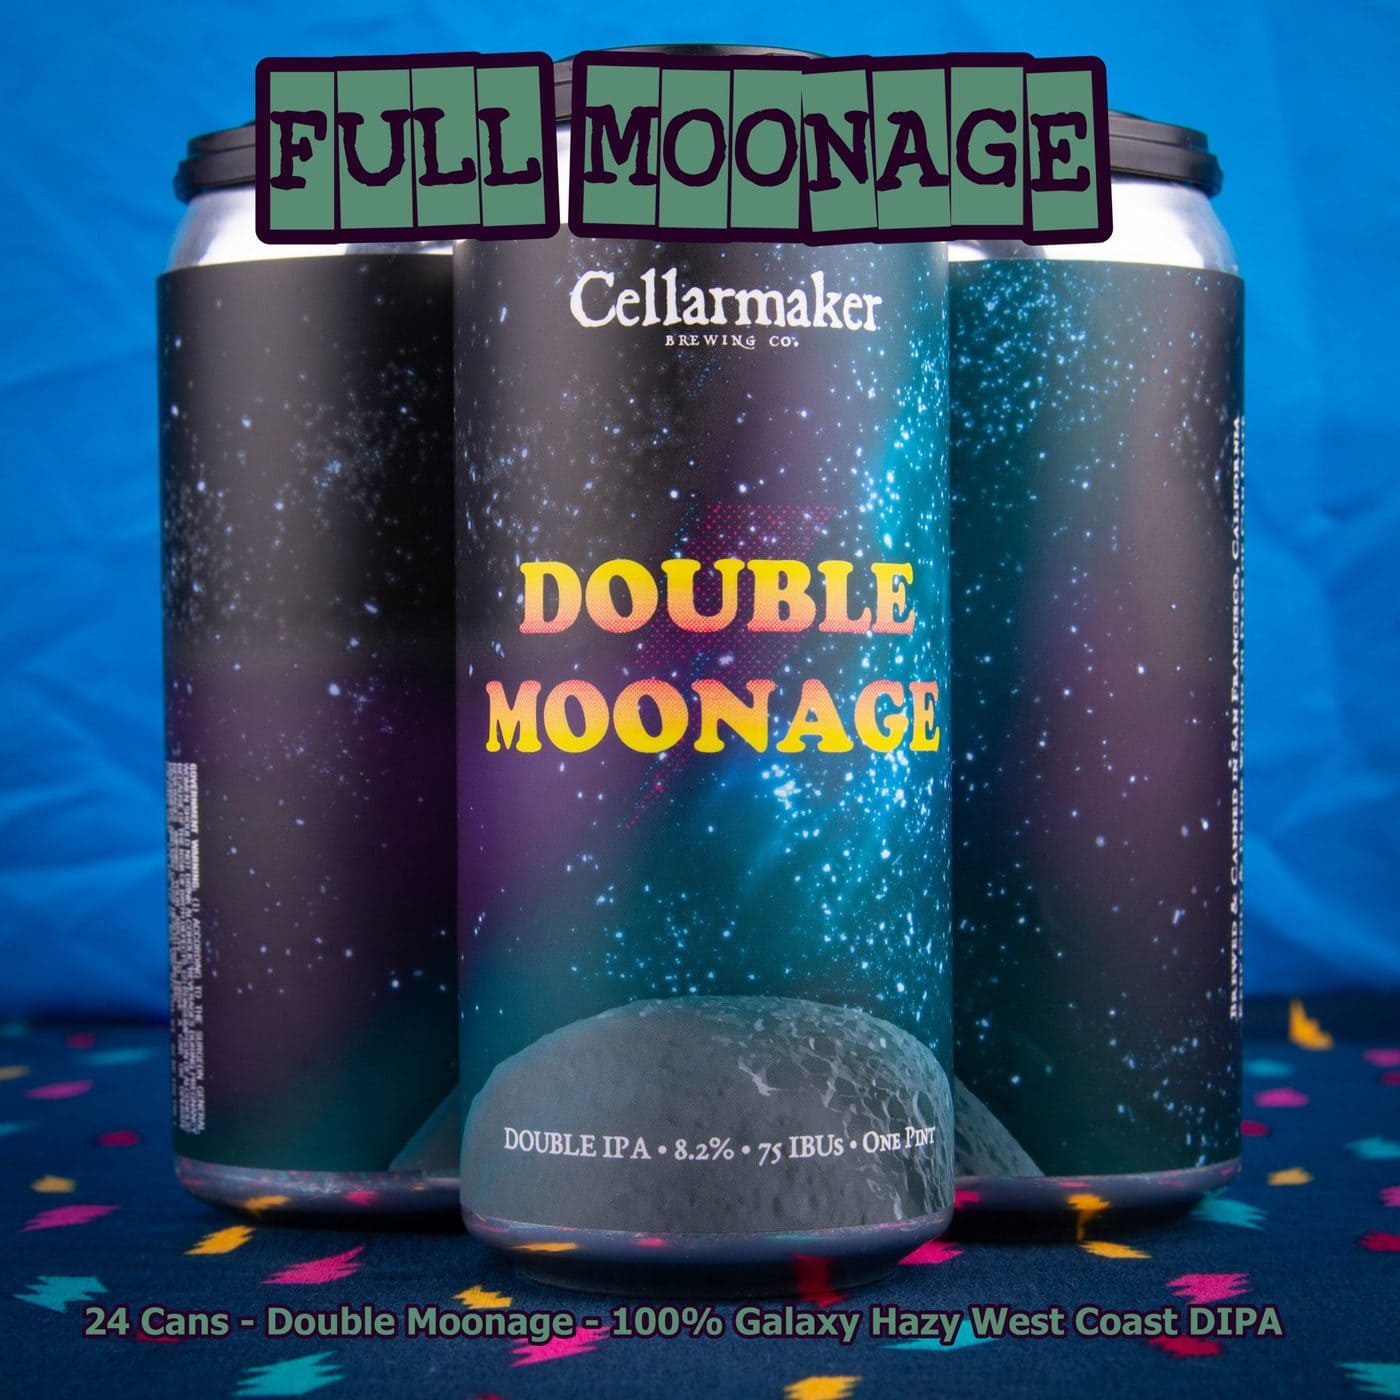 FULL CASE 24 CANS Double Moonage Hazy DIPA- Shipping Out Tuesday 5/11 For Next Day Delivery*